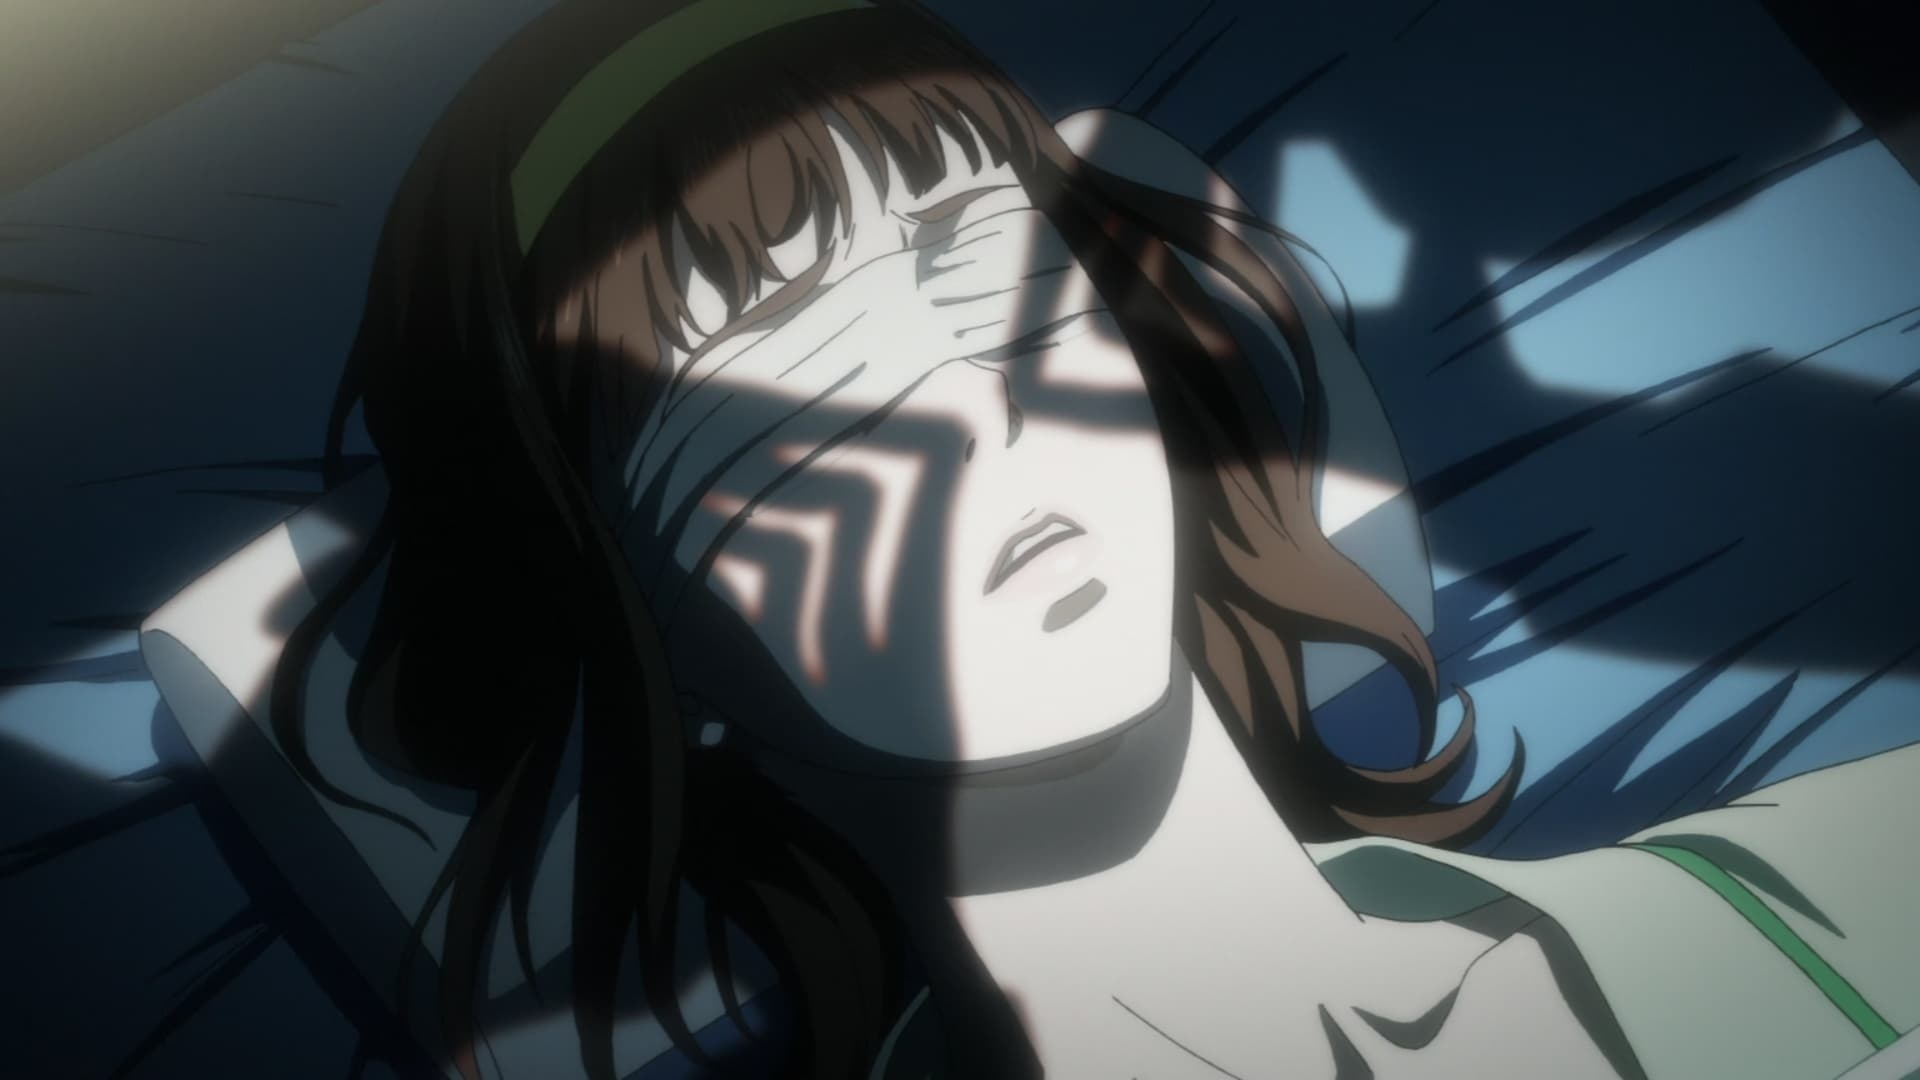 Psycho Pass 3 episode 6